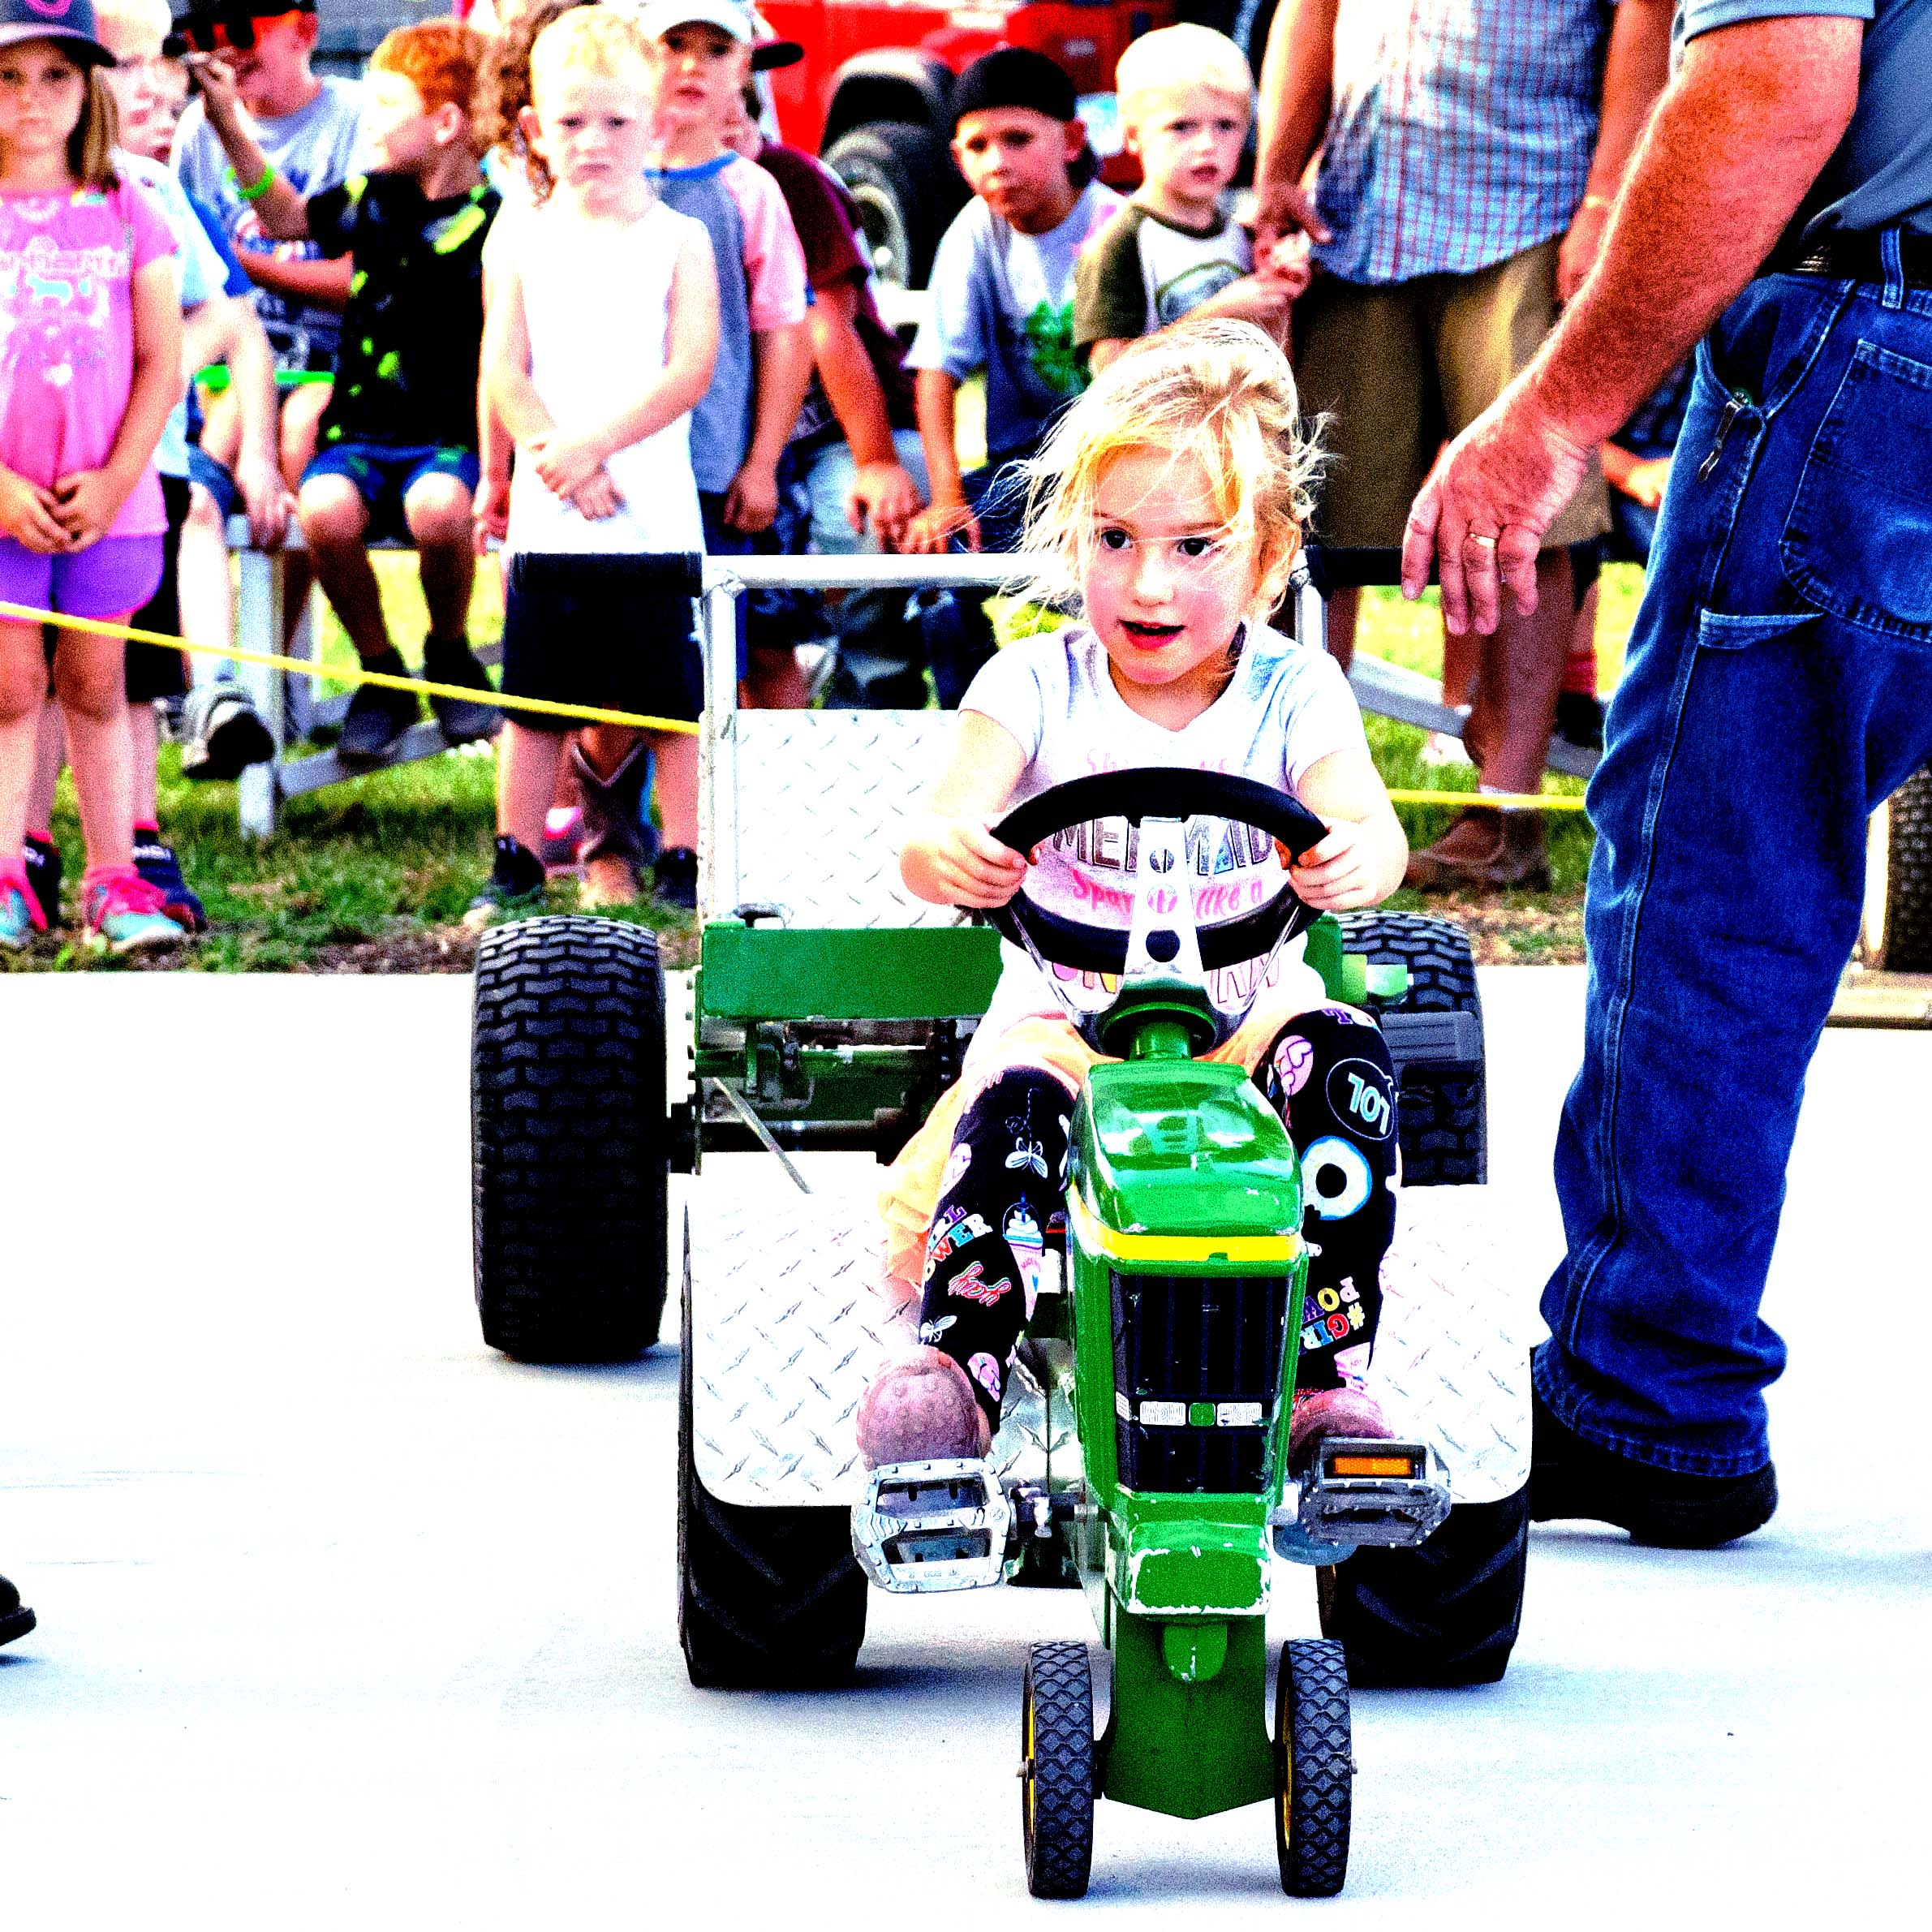 Hillsboro graduates await walking down the track toward their seats during Hillsboro High School commencement Saturday afternoon. From left, Tassanee Sanchez, Matthew Denholm, Aaron Shaffer, Austin Cross, and Mosharay Smith-Graves. 29 students graduated at the Joel Wiens Stadium, with Reece Berens, Matthew Denholm, Lydia Kliewer, and Kalen Moss serving as valedictorians.